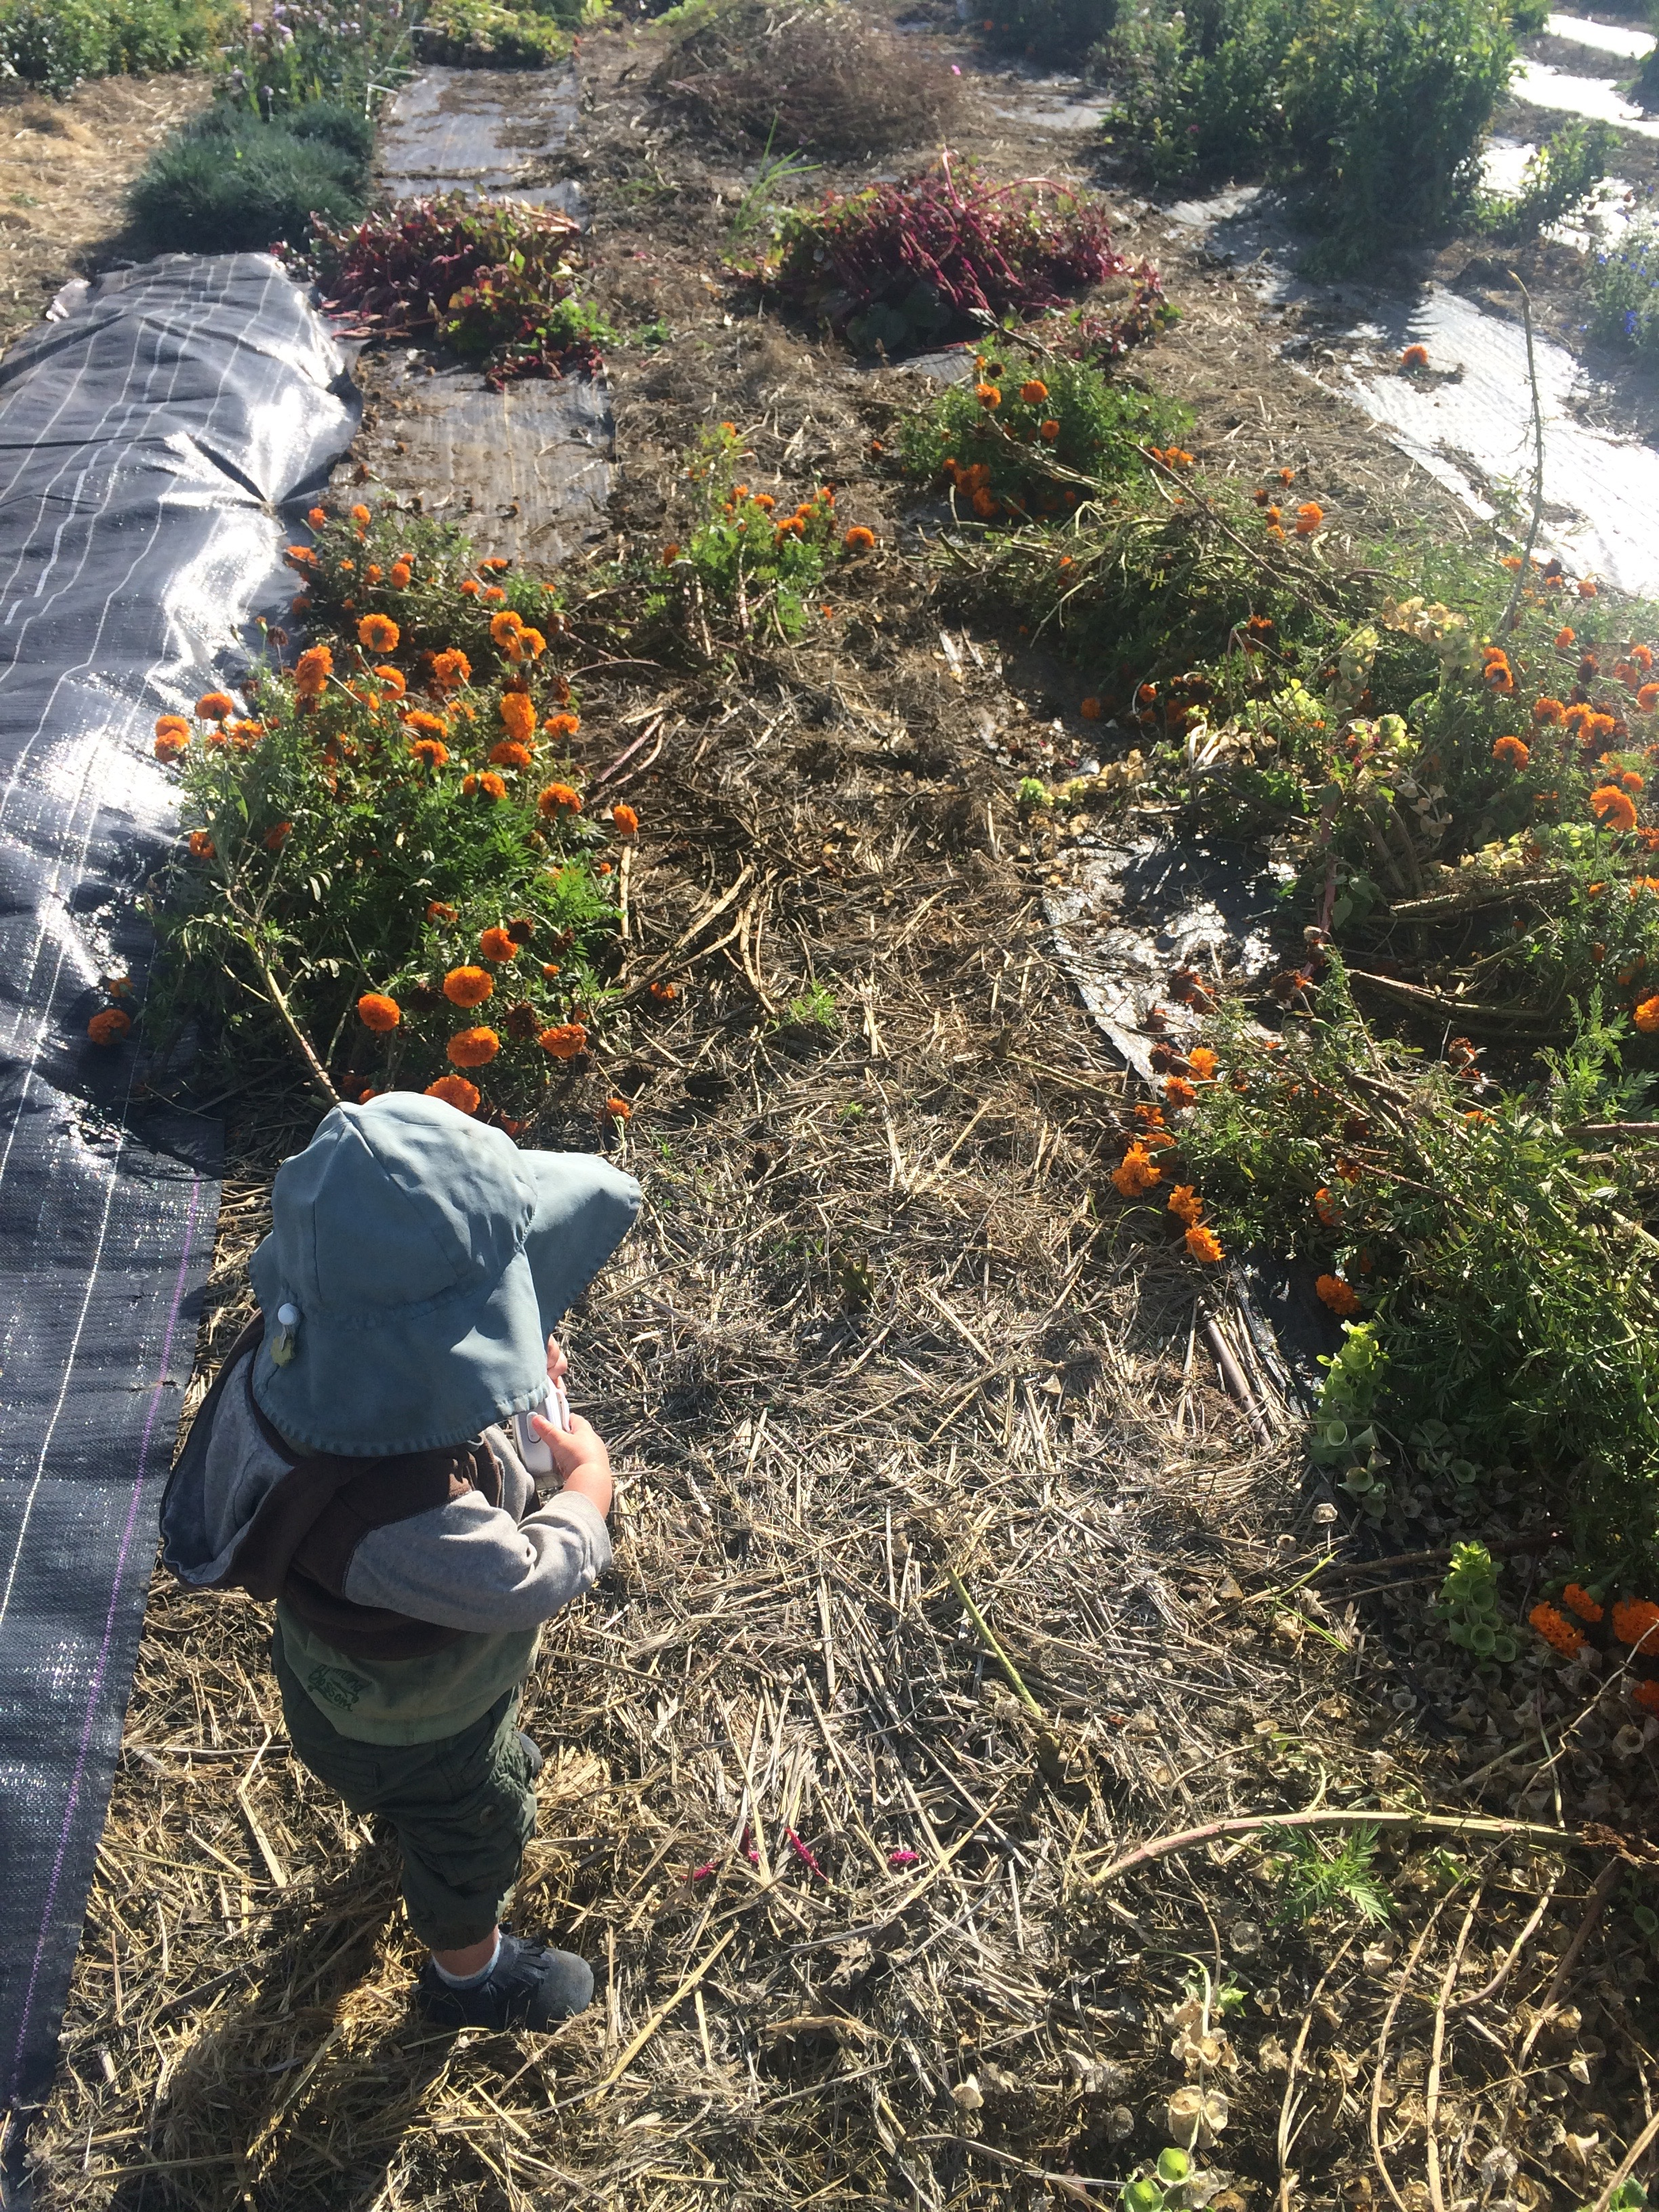 Nalin, my little farm boy, and the piles of spent cosmos, marigolds, celosia, and bells of Ireland